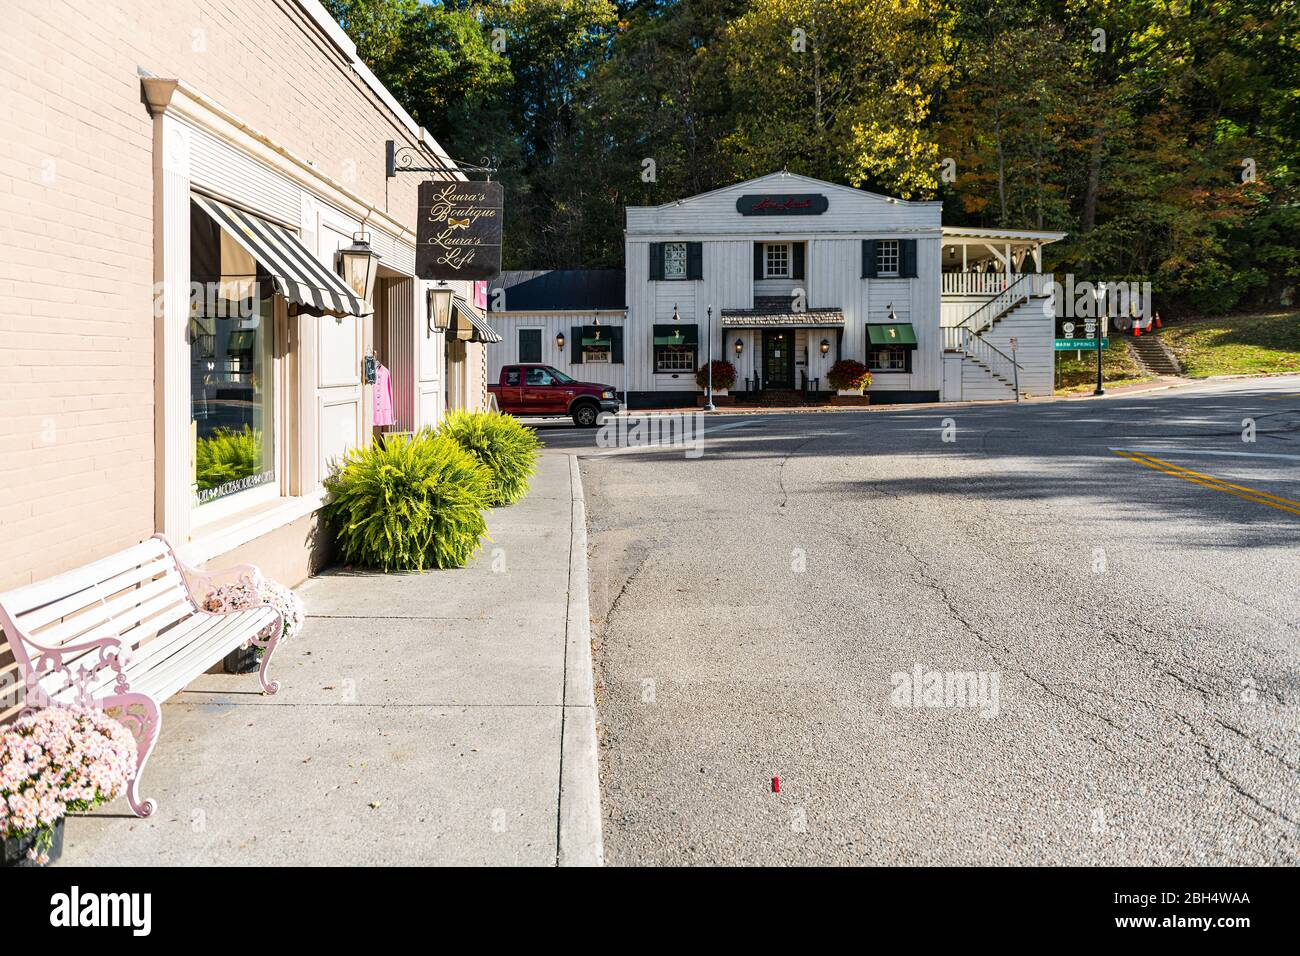 Hot Springs, USA - October 18, 2019: Historic downtown town empty street road in village city in Virginia countryside with old building architecture a Stock Photo